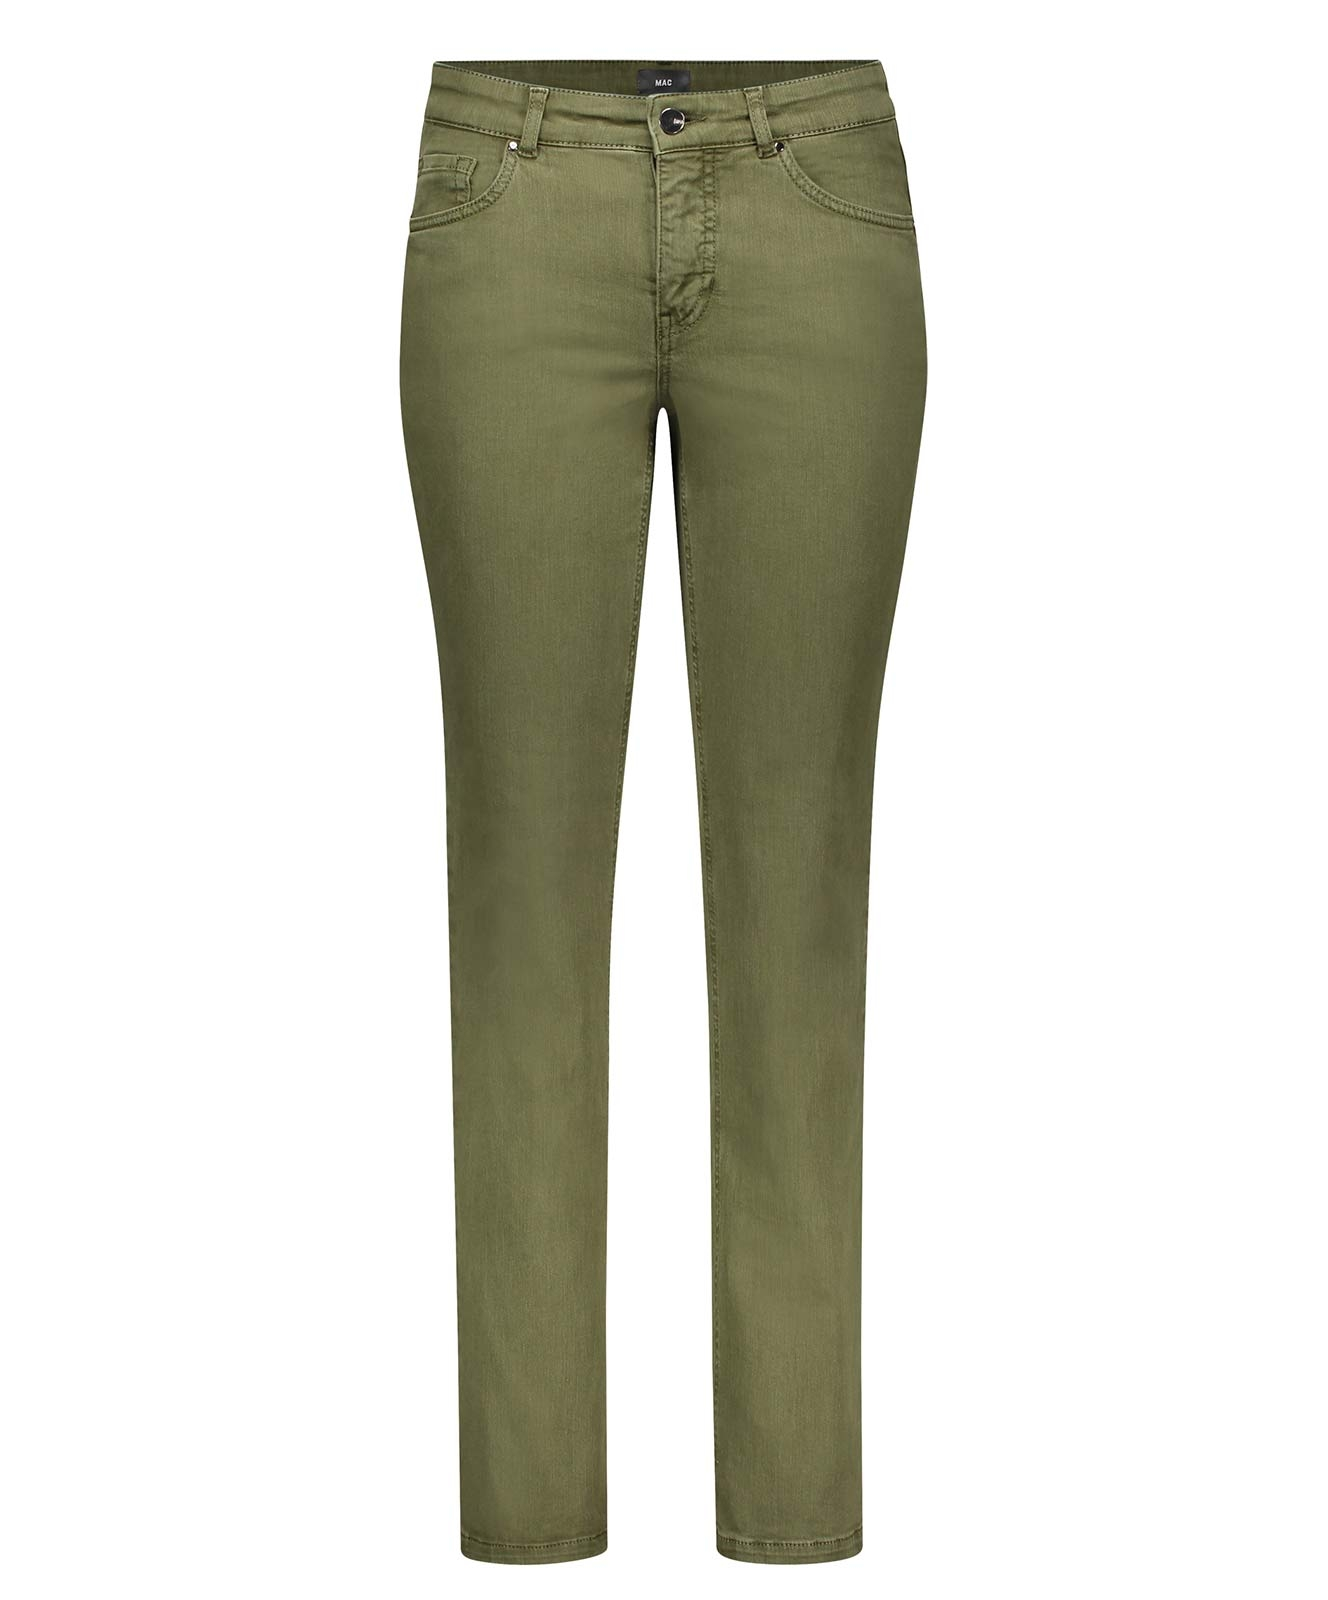 Hosen - MAC Straight Leg Jeans Melanie in Military Green  - Onlineshop Jeans Meile